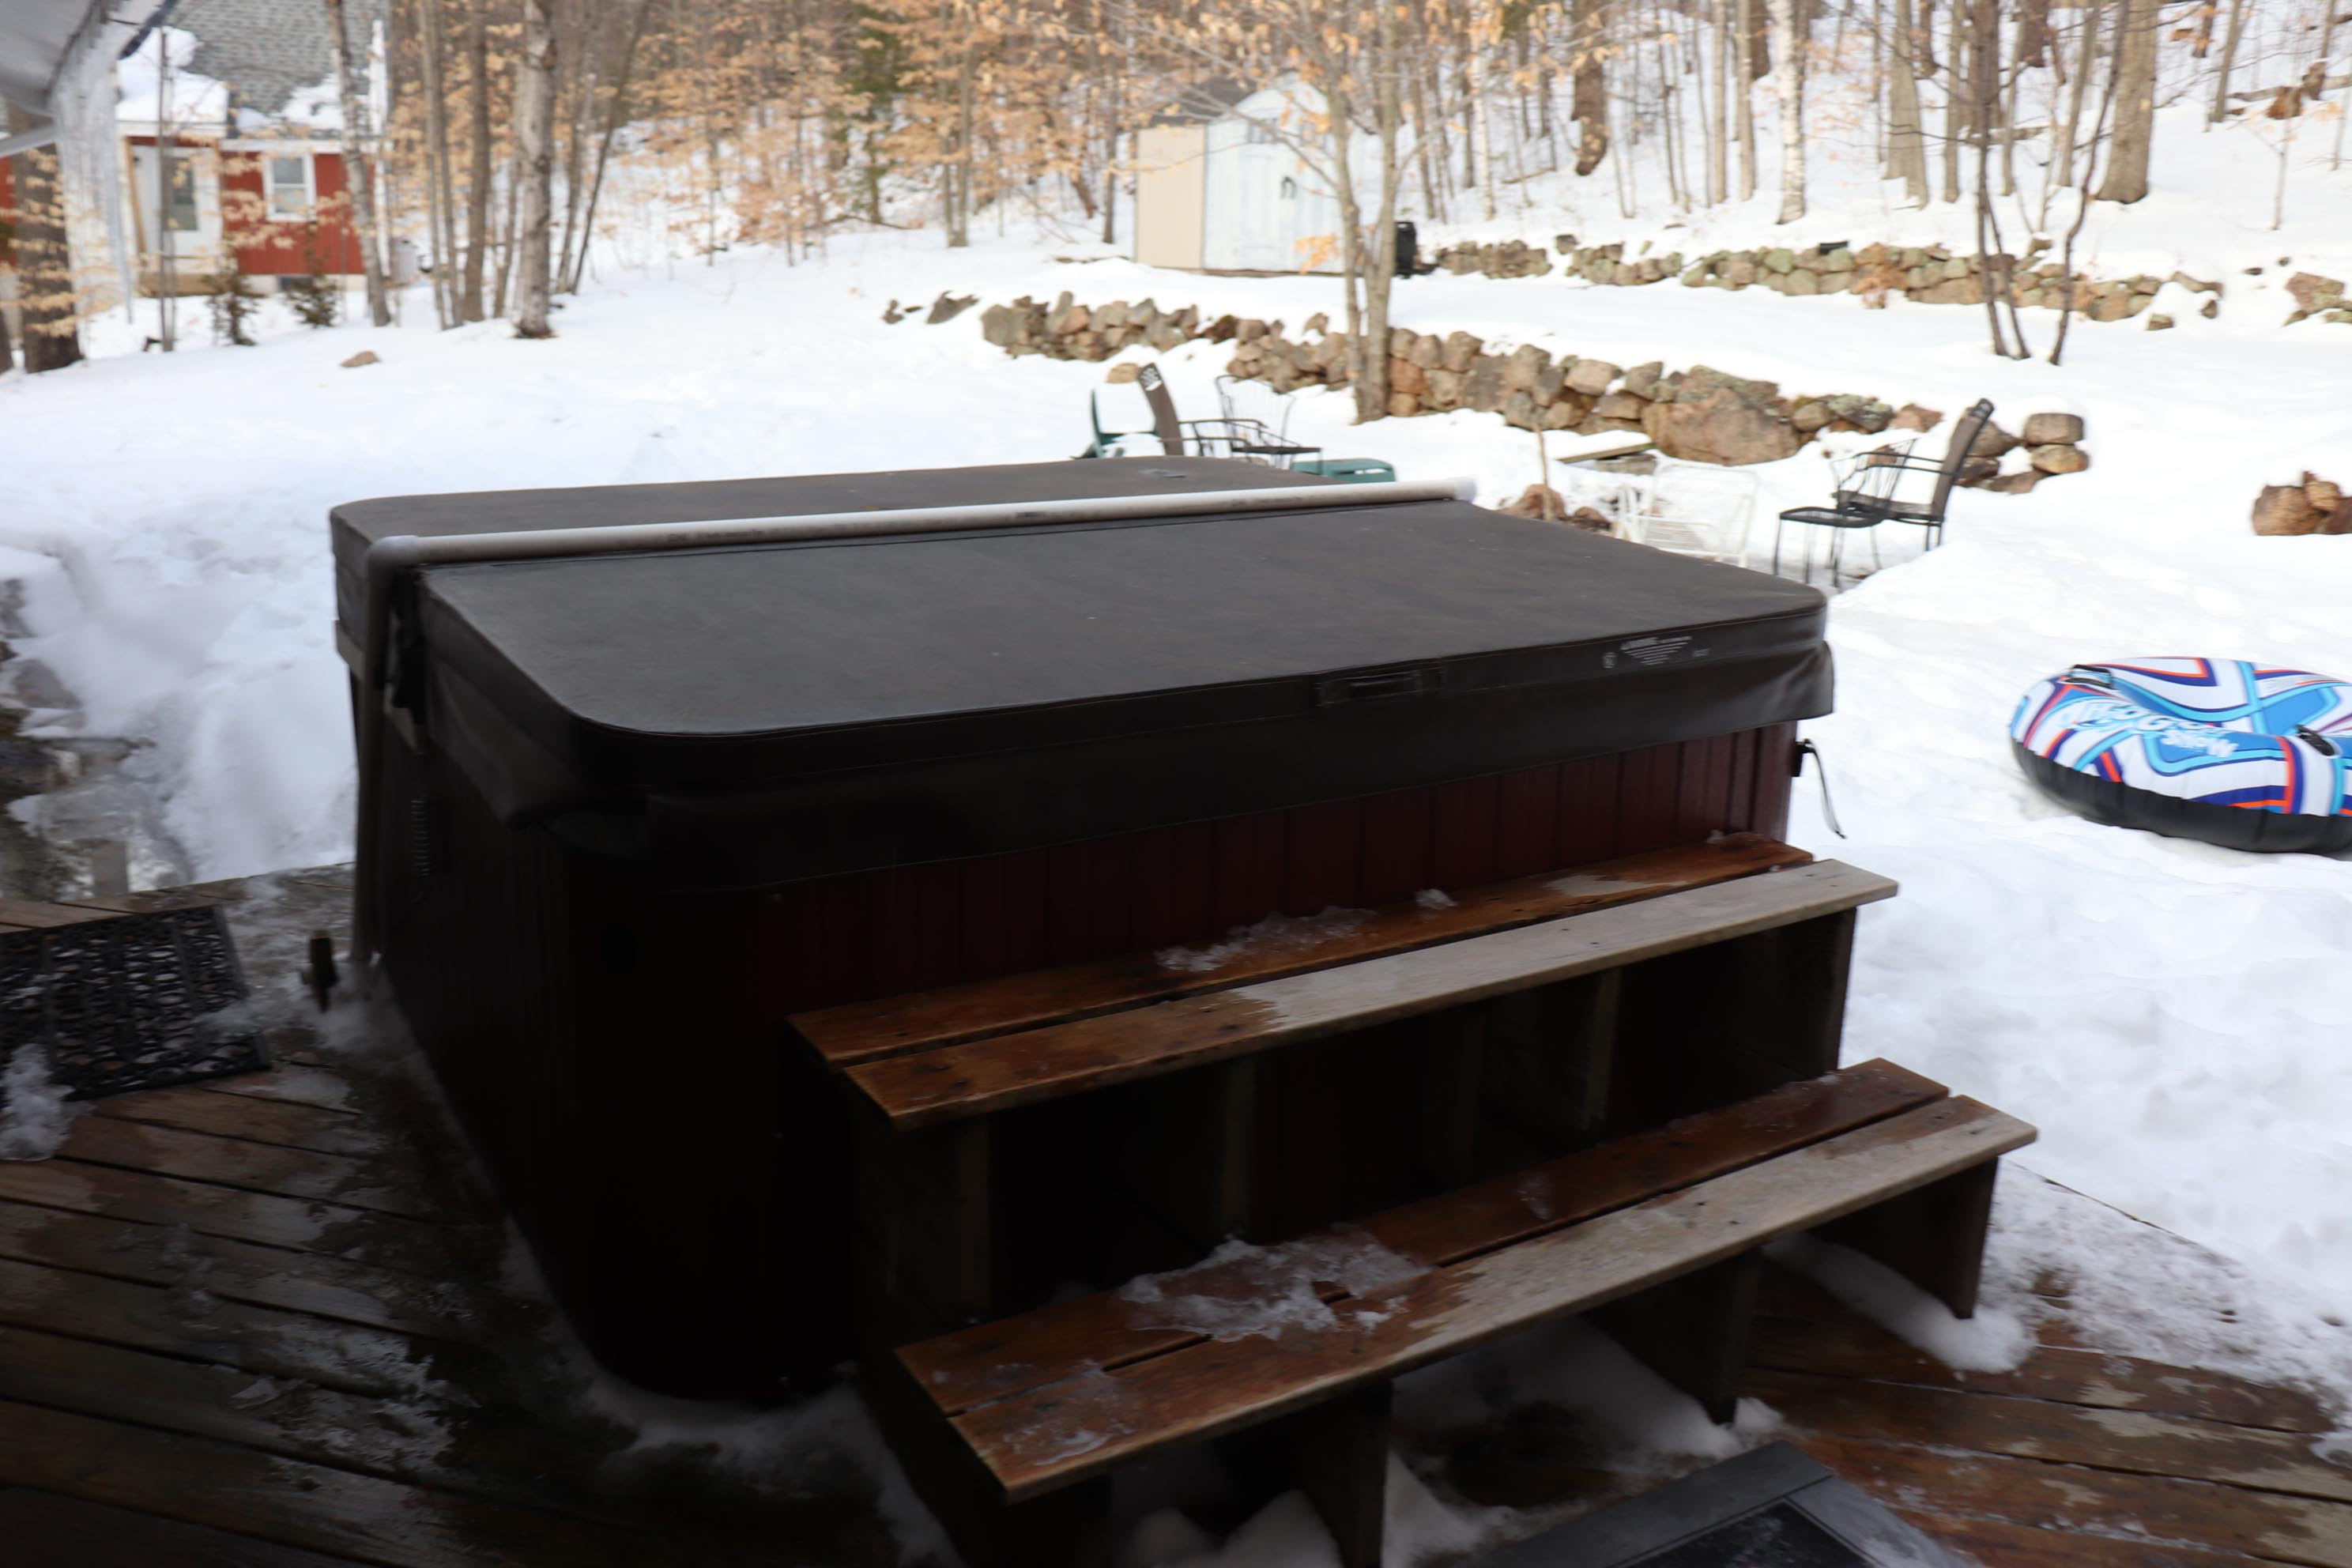 Hot Tub Winter